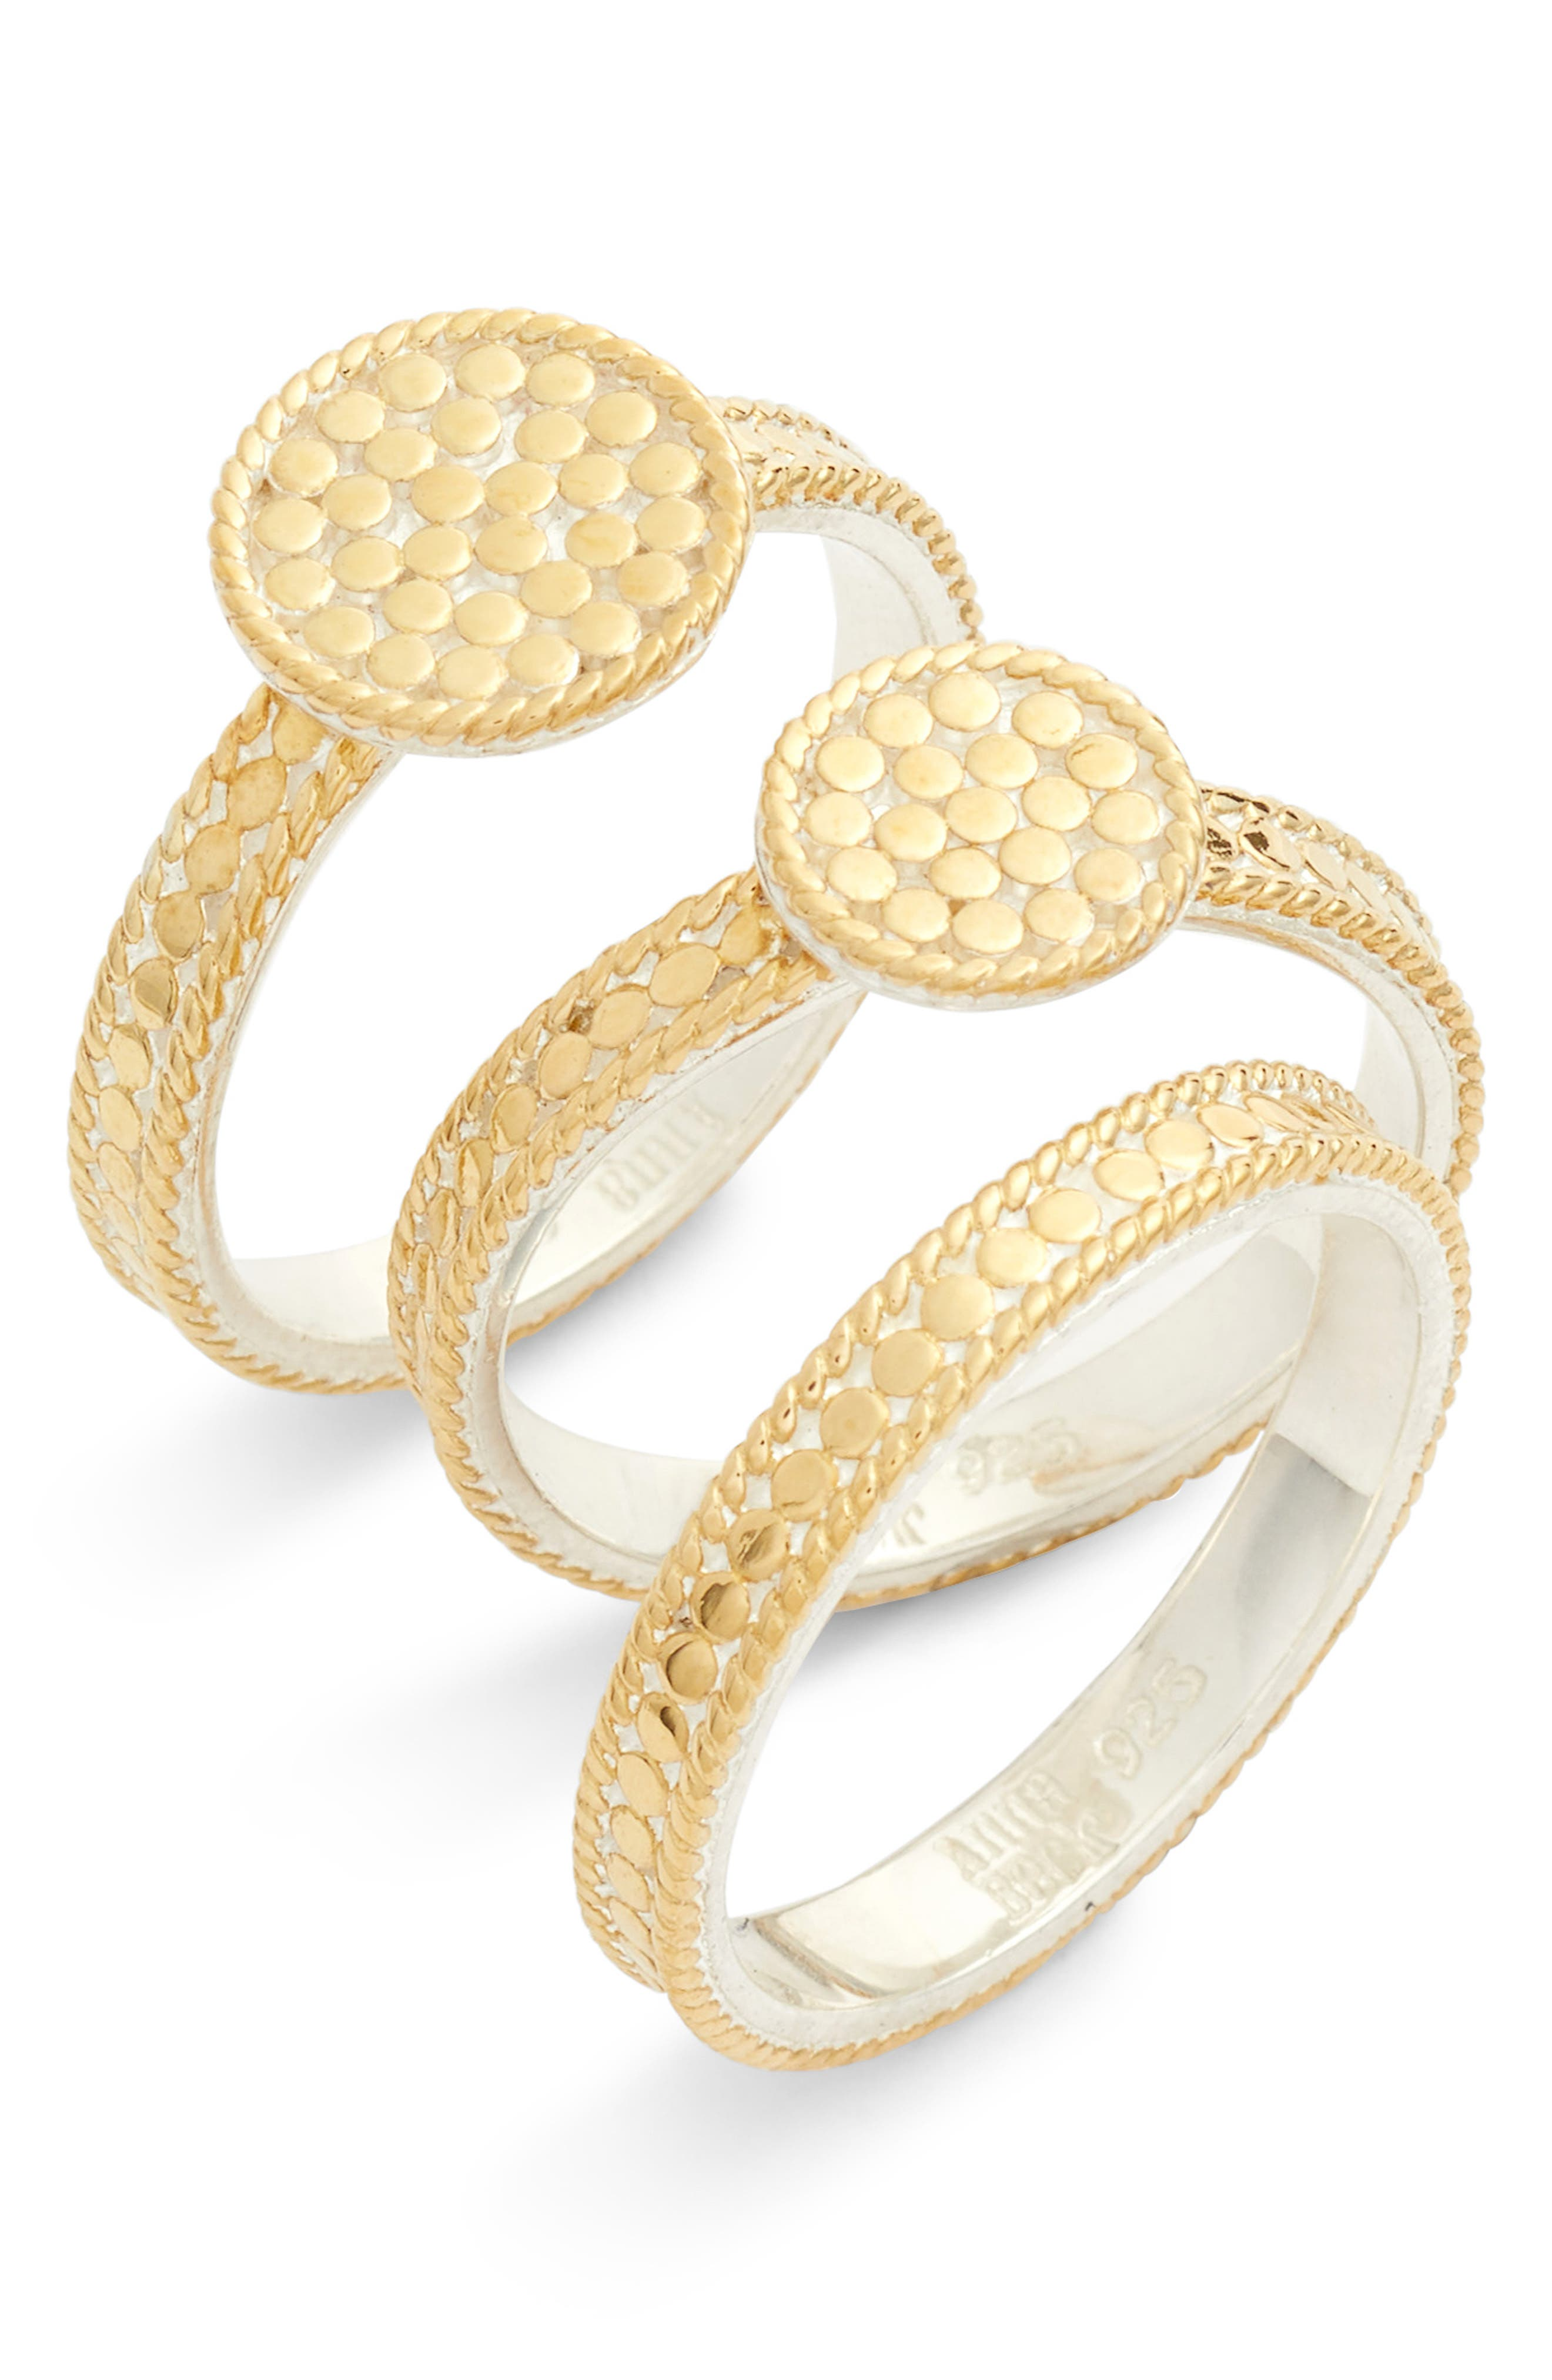 Gold Plate Disc Set of 3 Stacking Rings,                             Main thumbnail 1, color,                             710